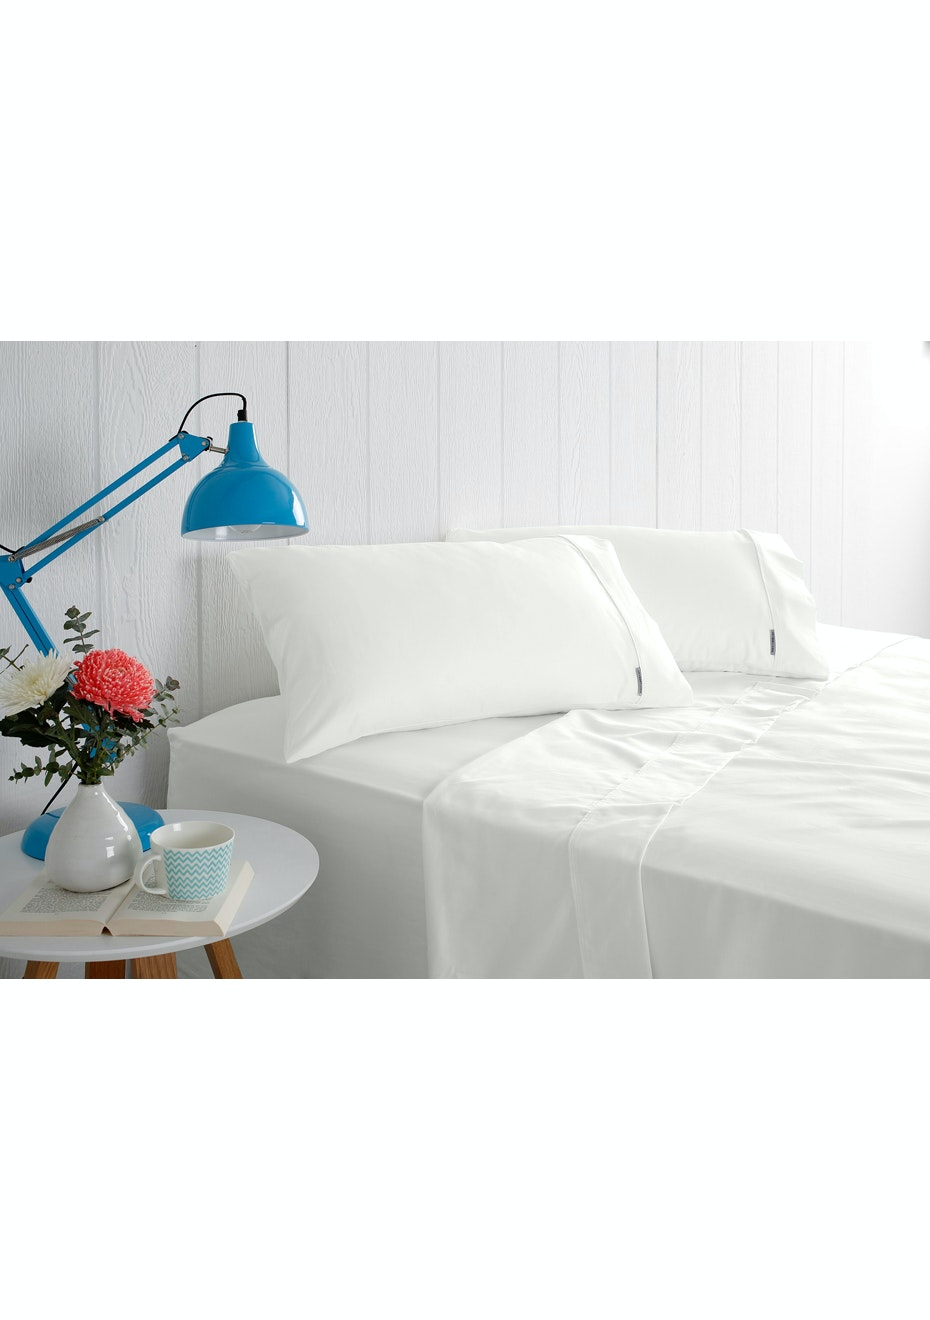 Odyssey Living 1000 Thread Count – Cotton Rich Sheet Sets - White - Queen Bed